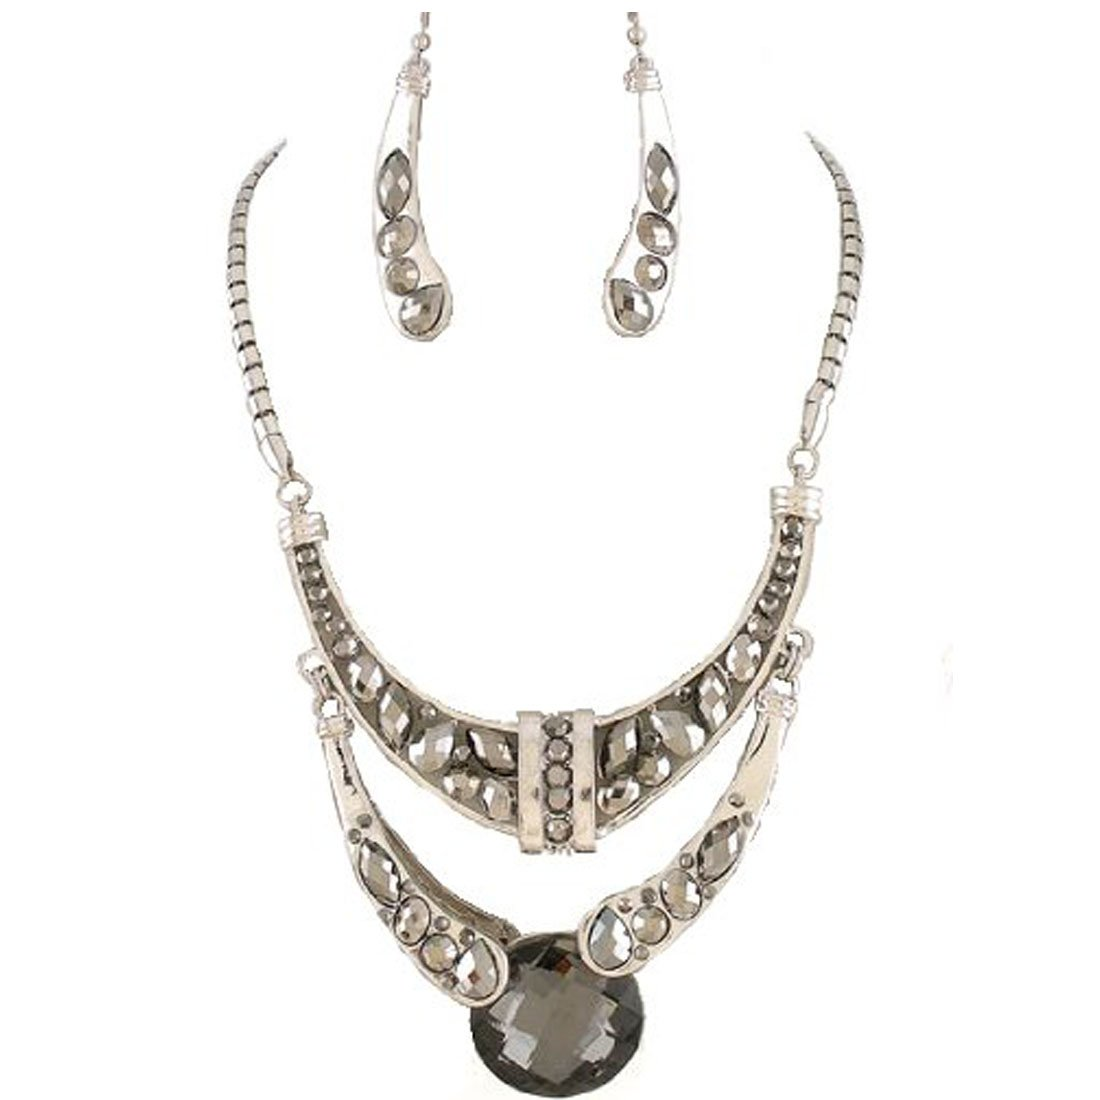 Fashion Jewelry ~ Silvertone Black Crystals Pendant Bold Statement Necklace and Earring Set